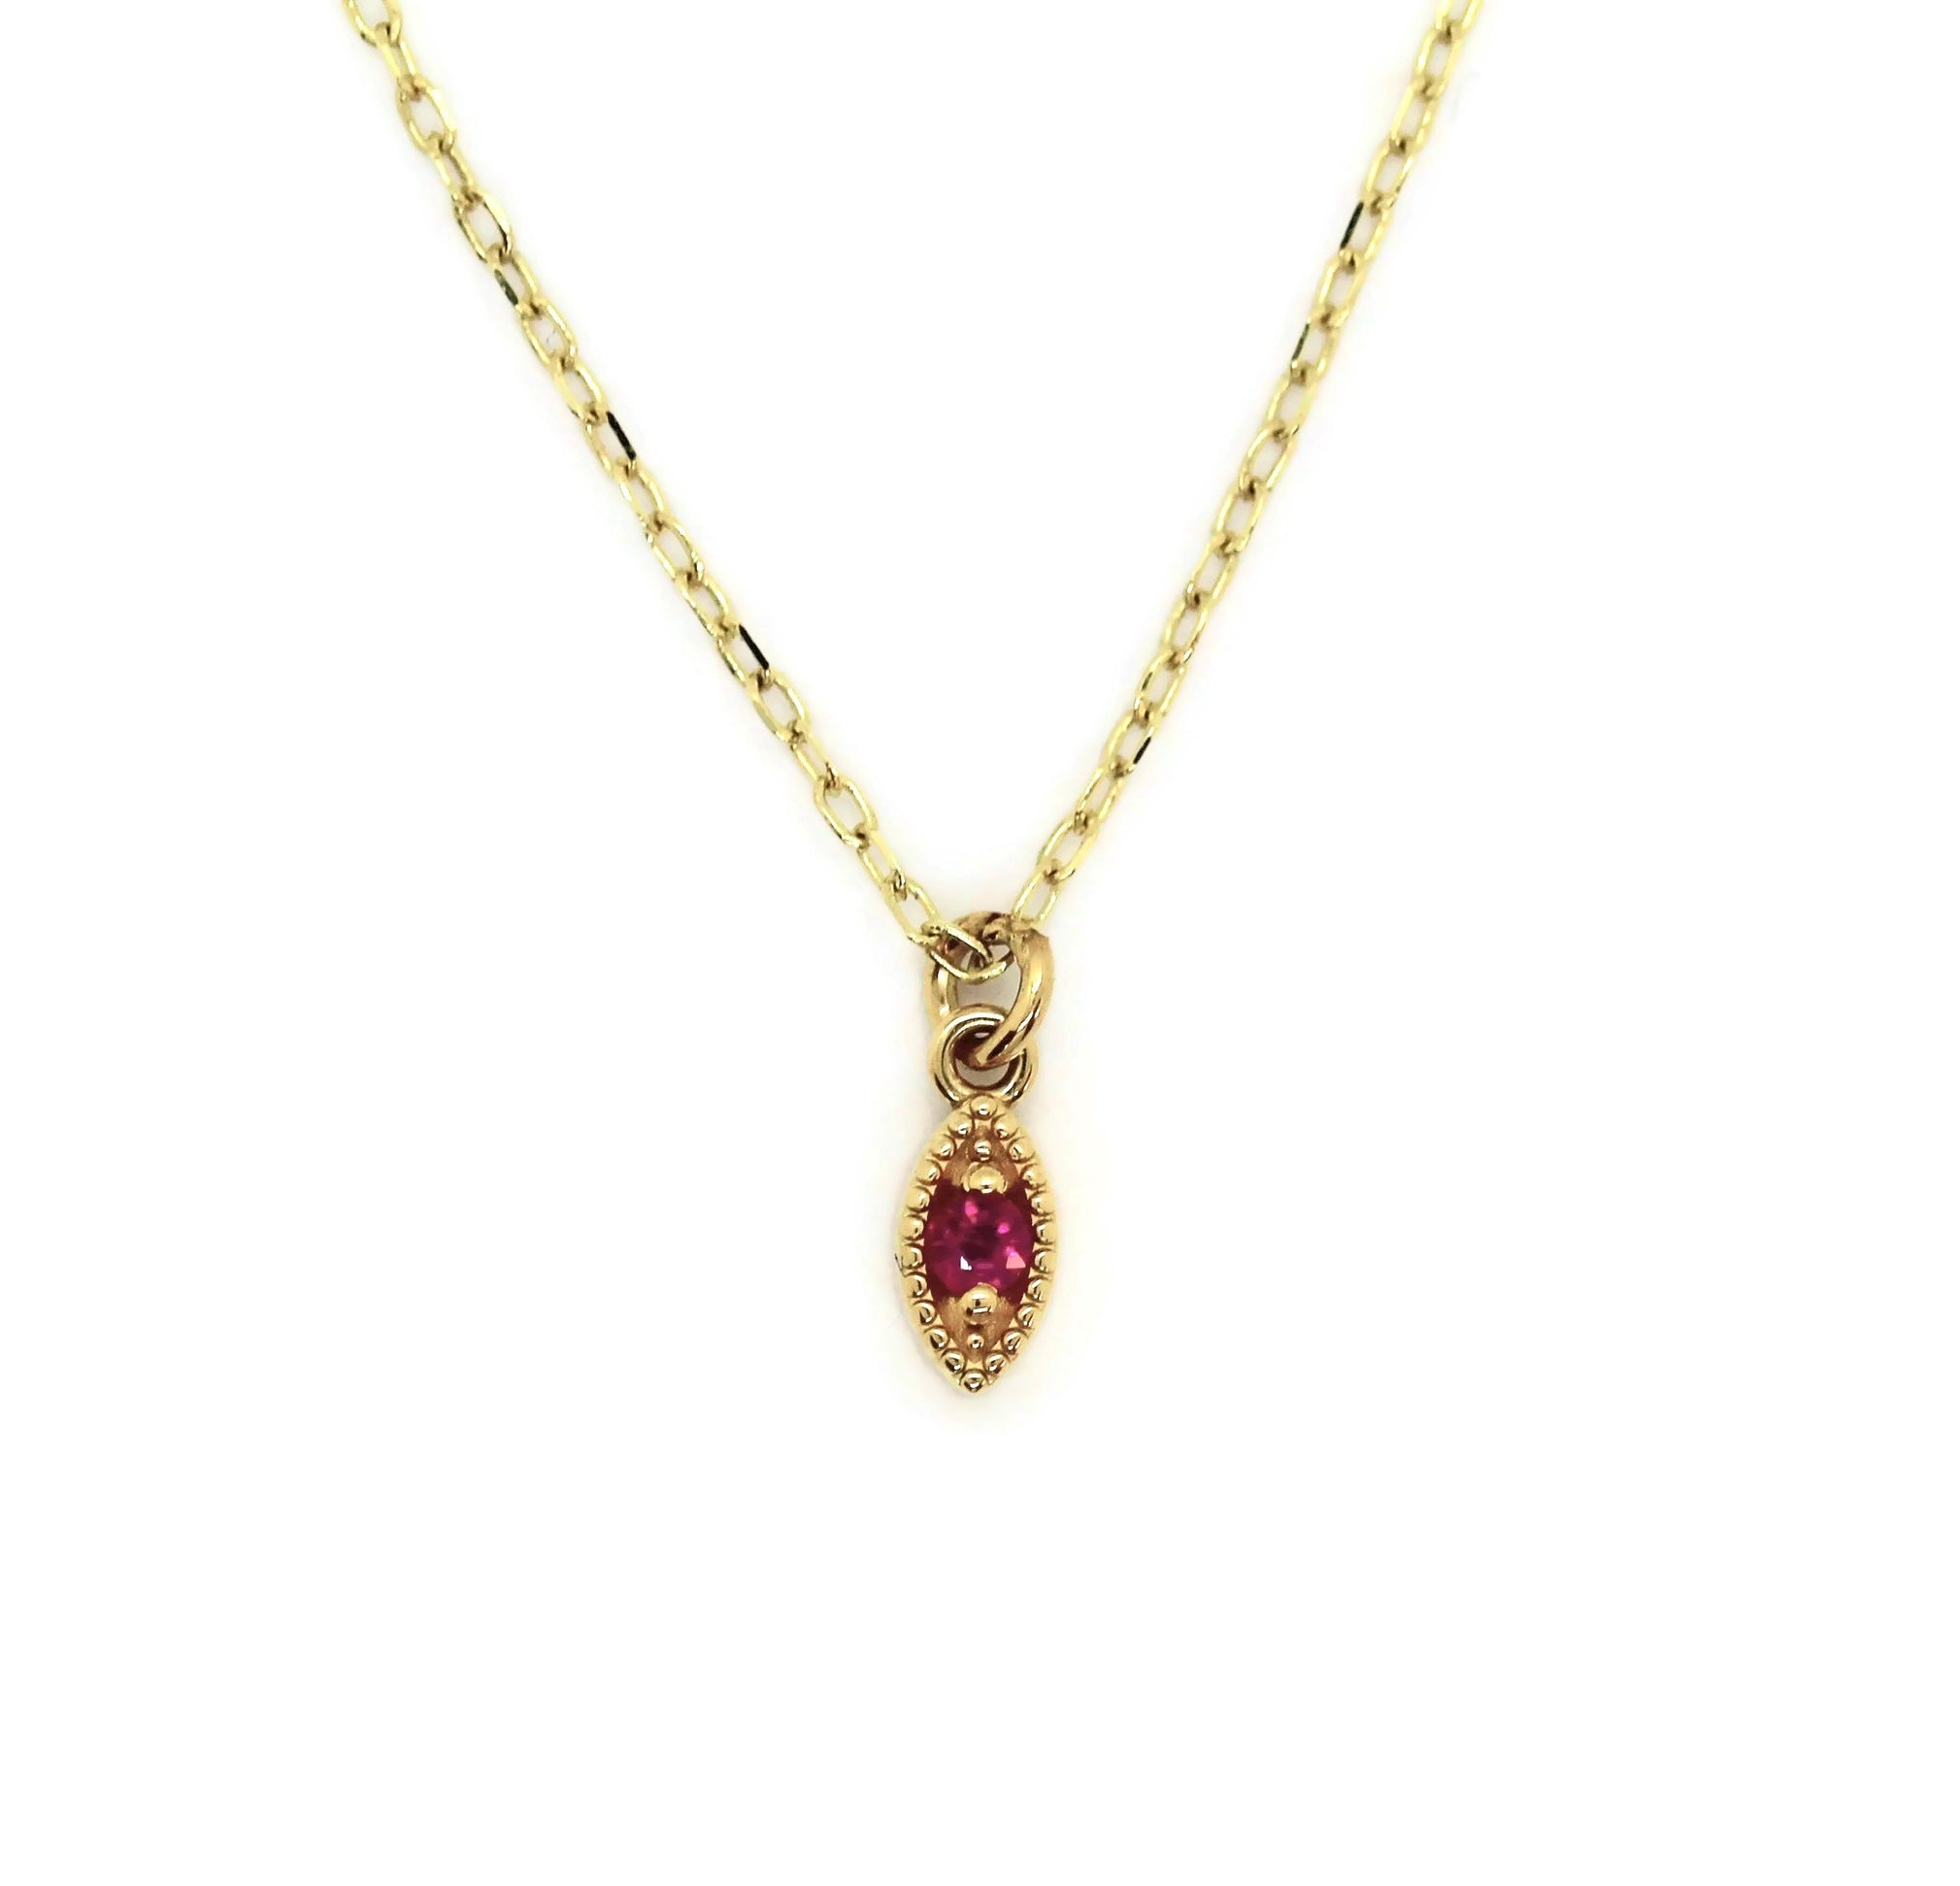 Ethereal Marquise Ruby Necklace